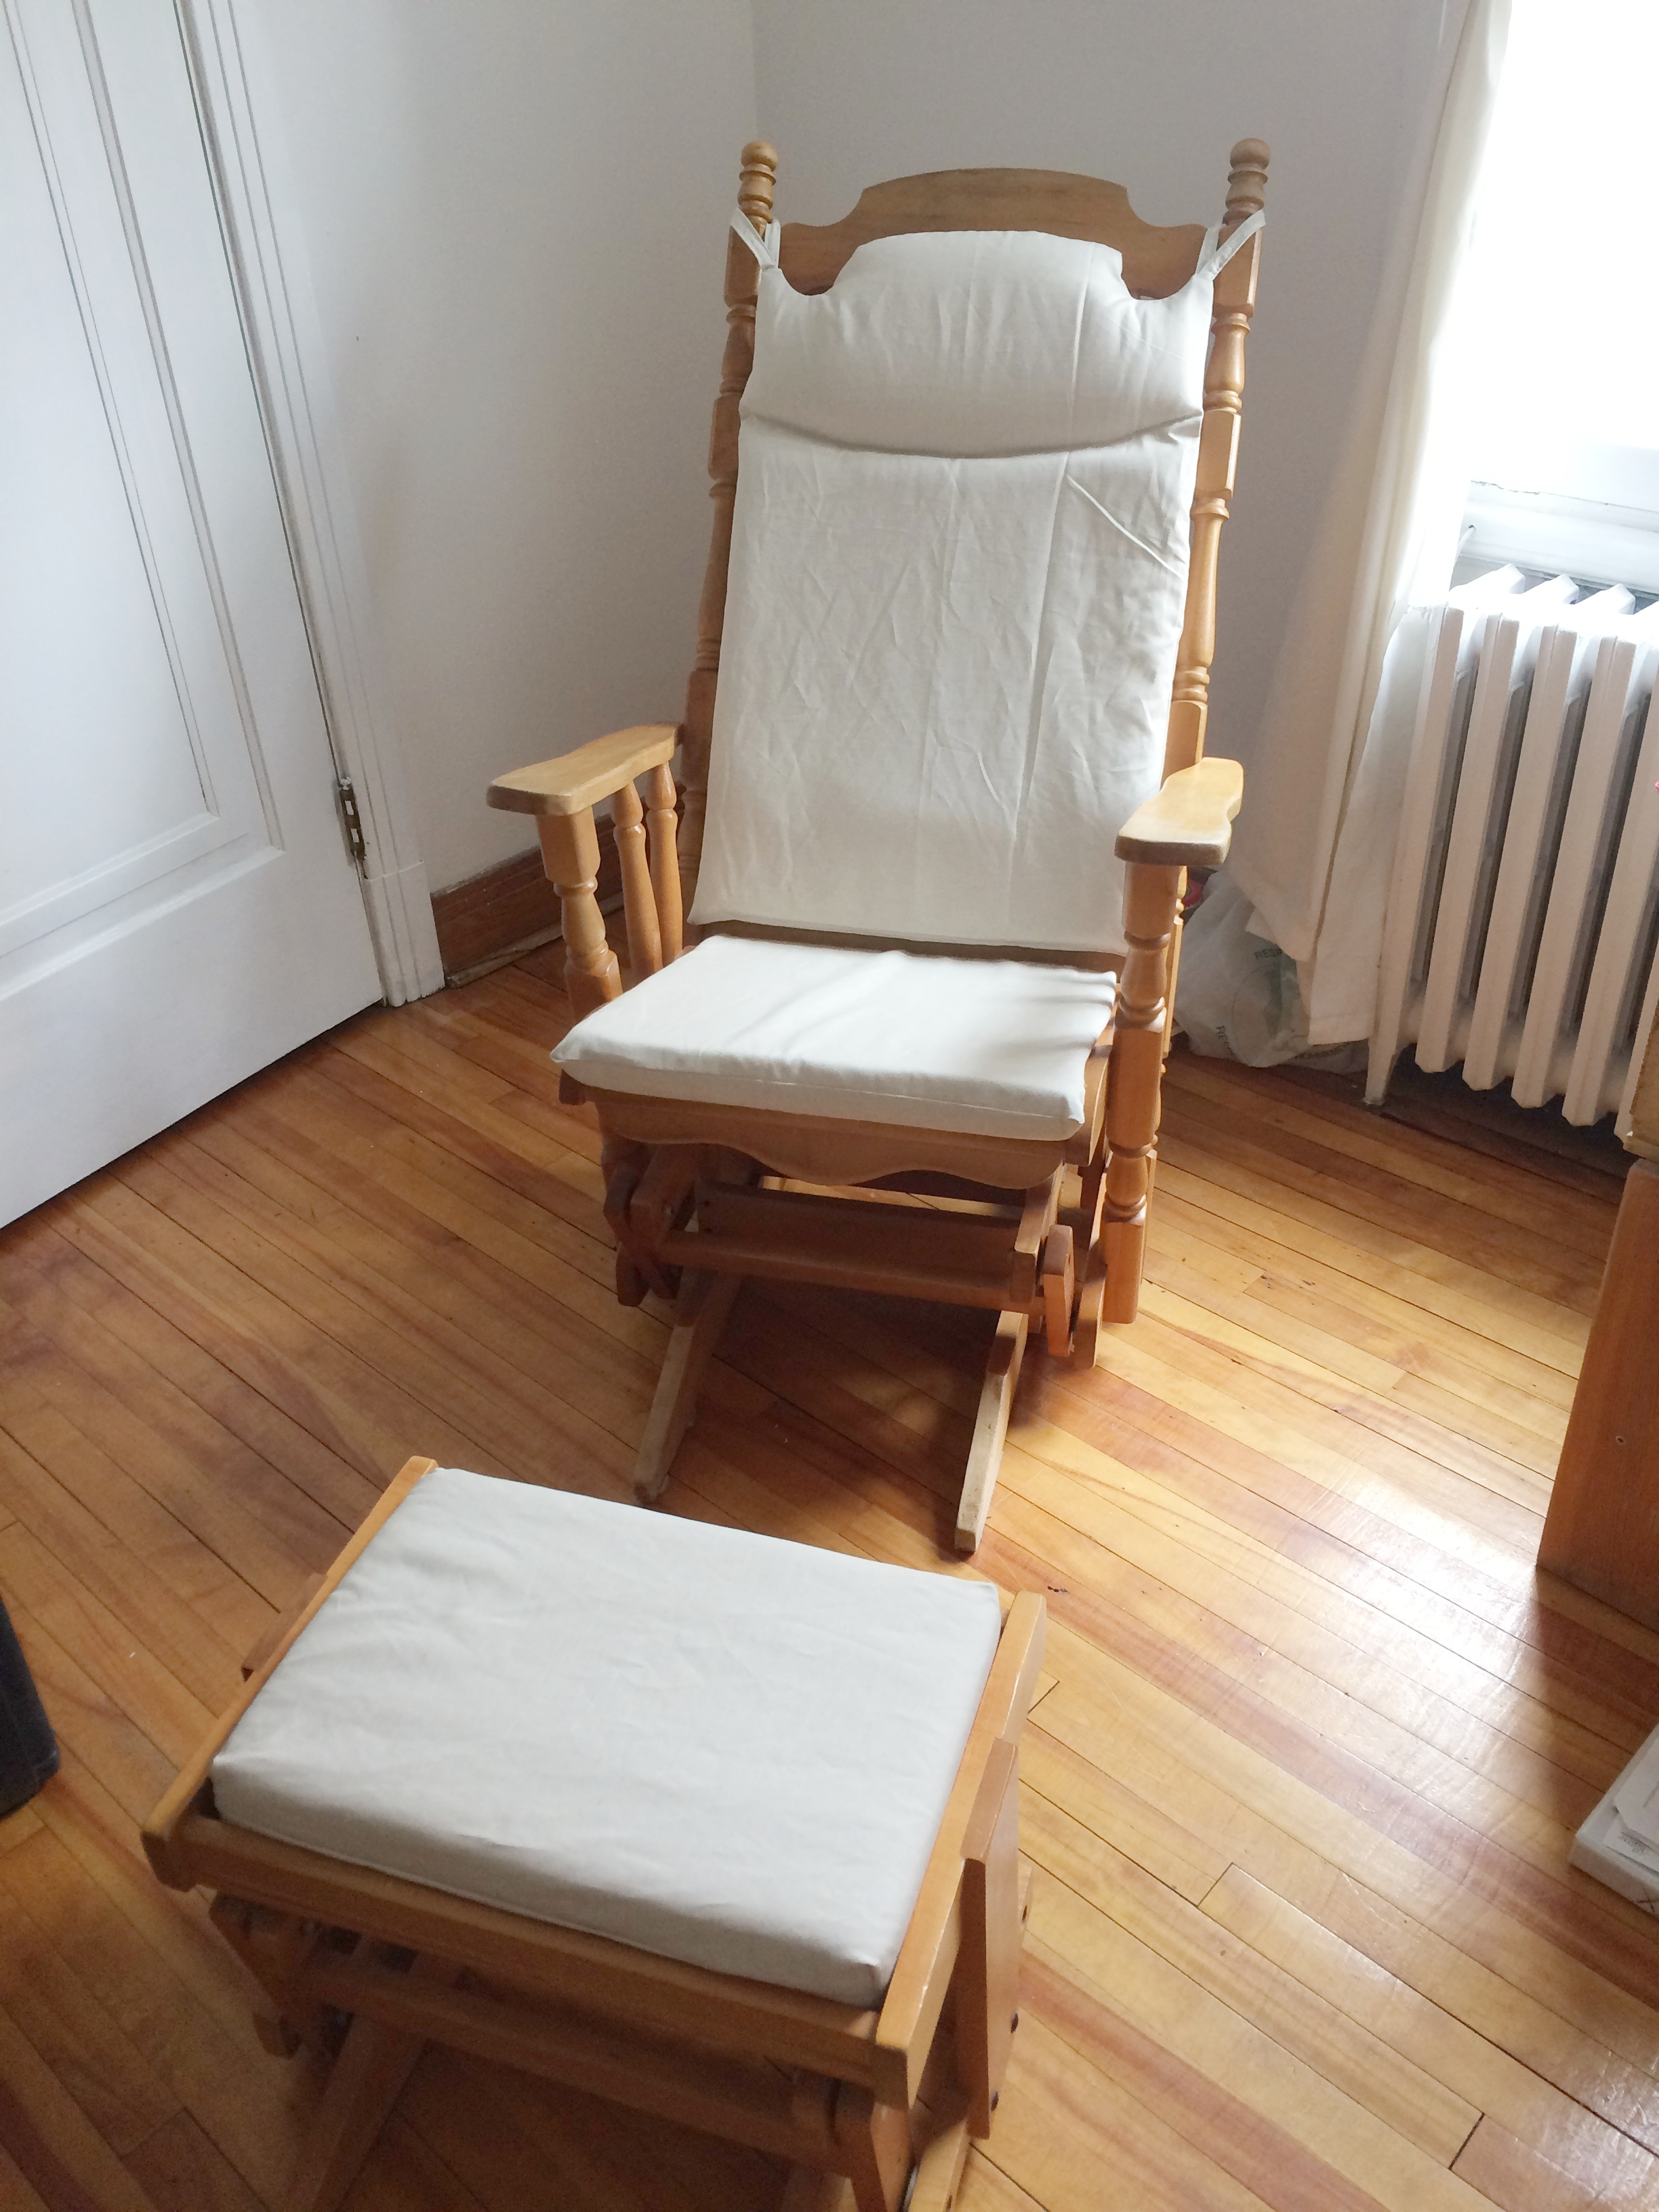 Baby room: Rocking chair after